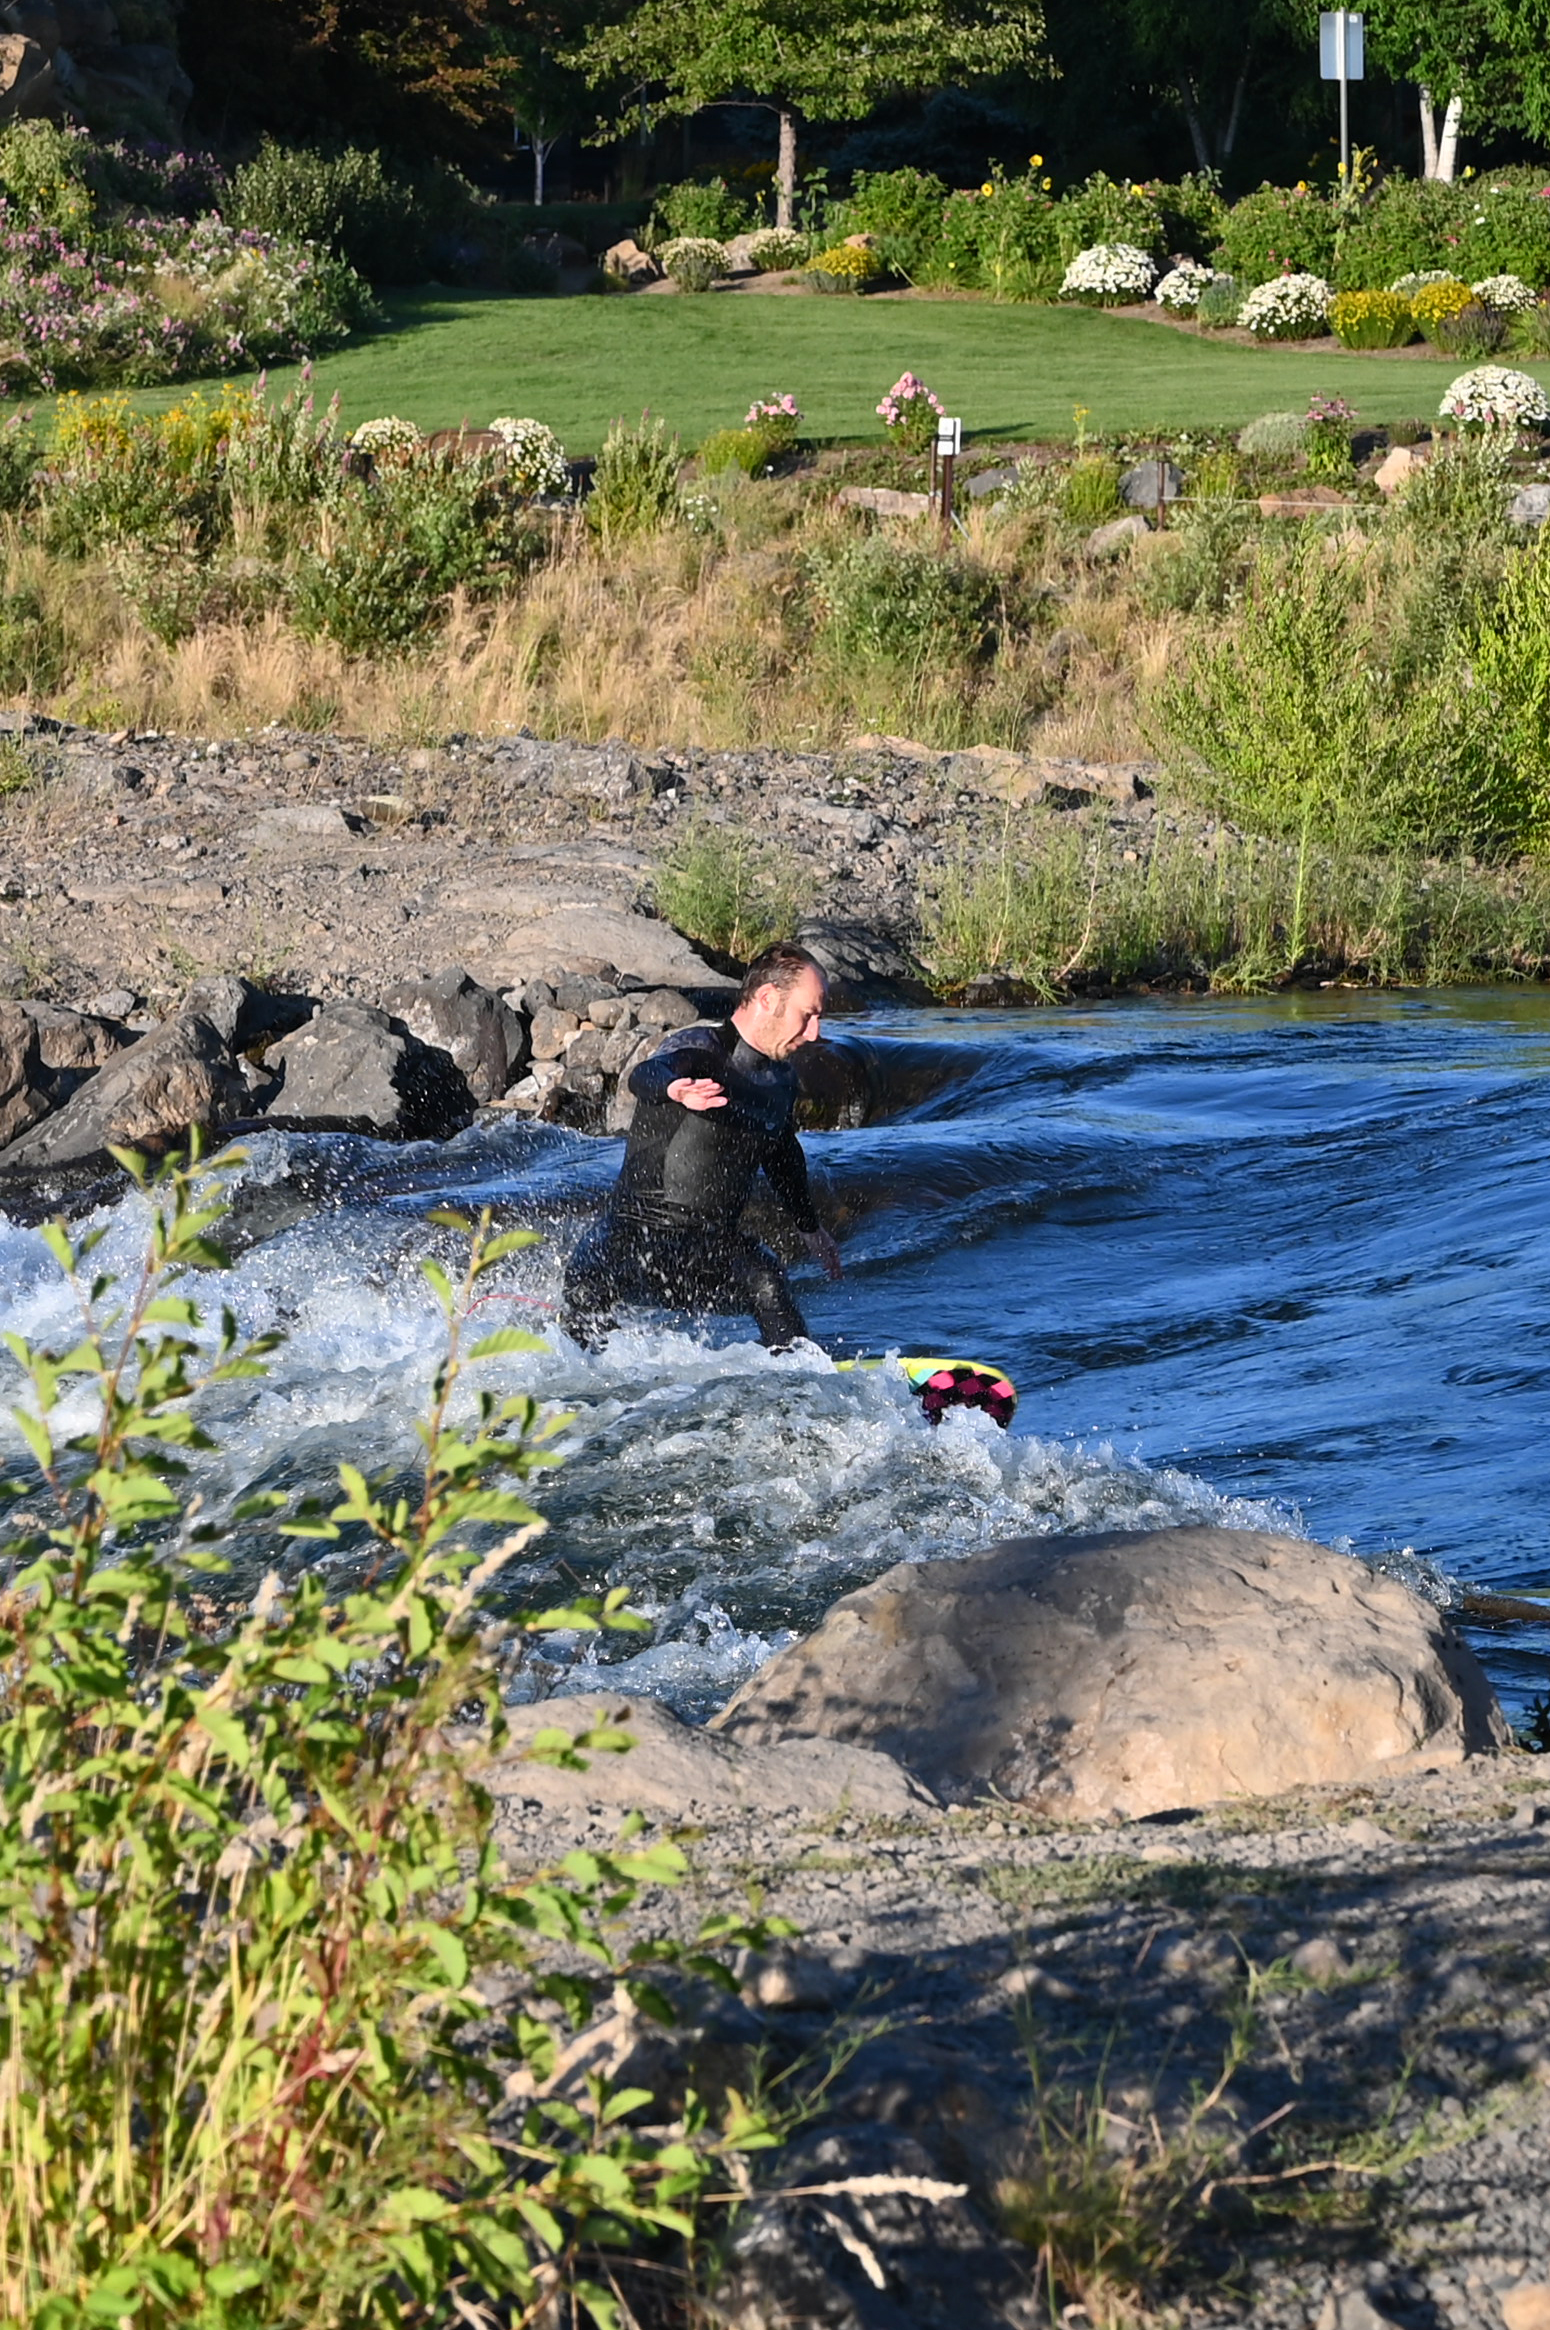 surfer cutting a turn on deschutes river standing wave in bend